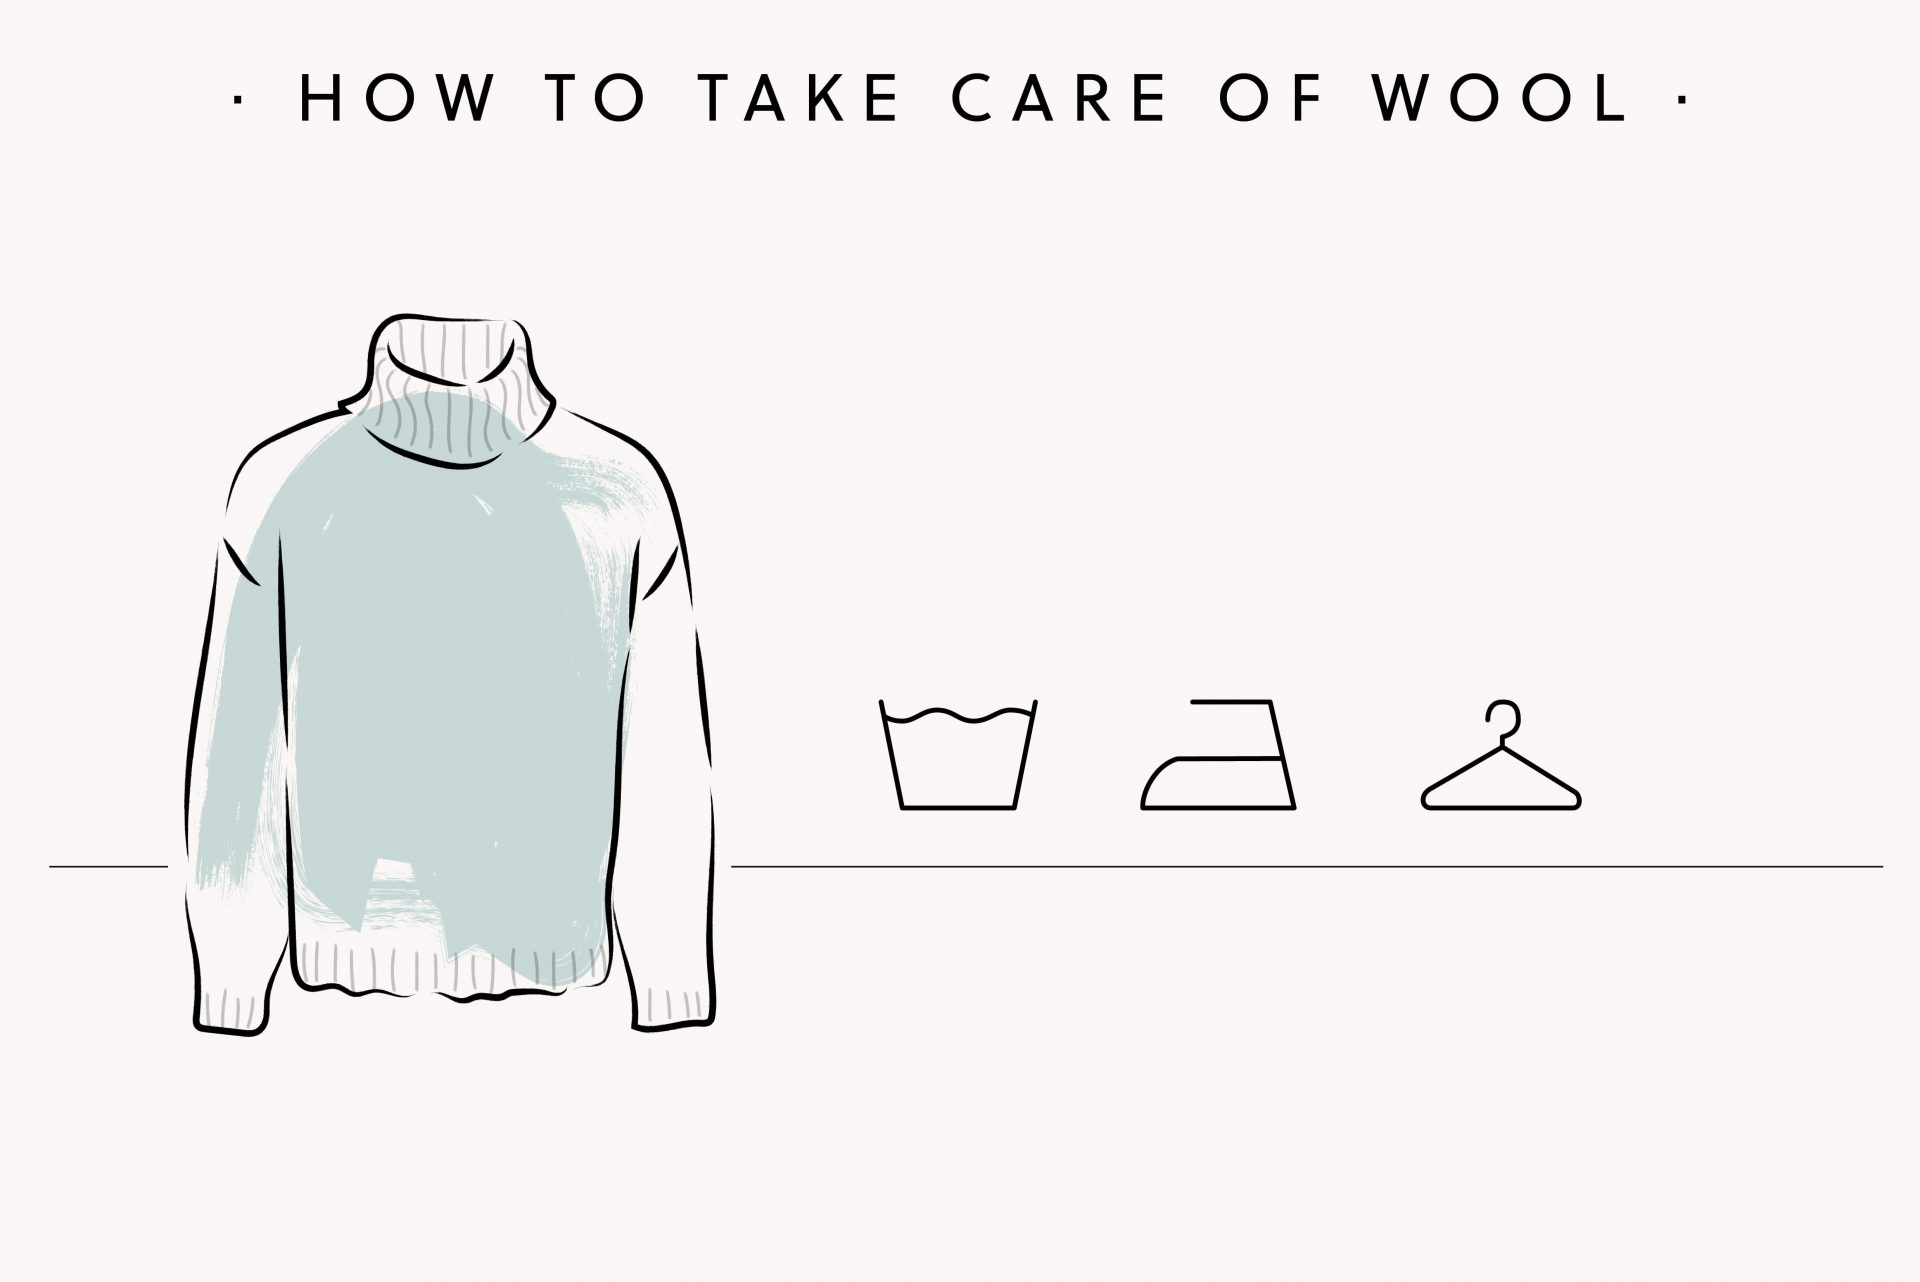 how to take care of wool